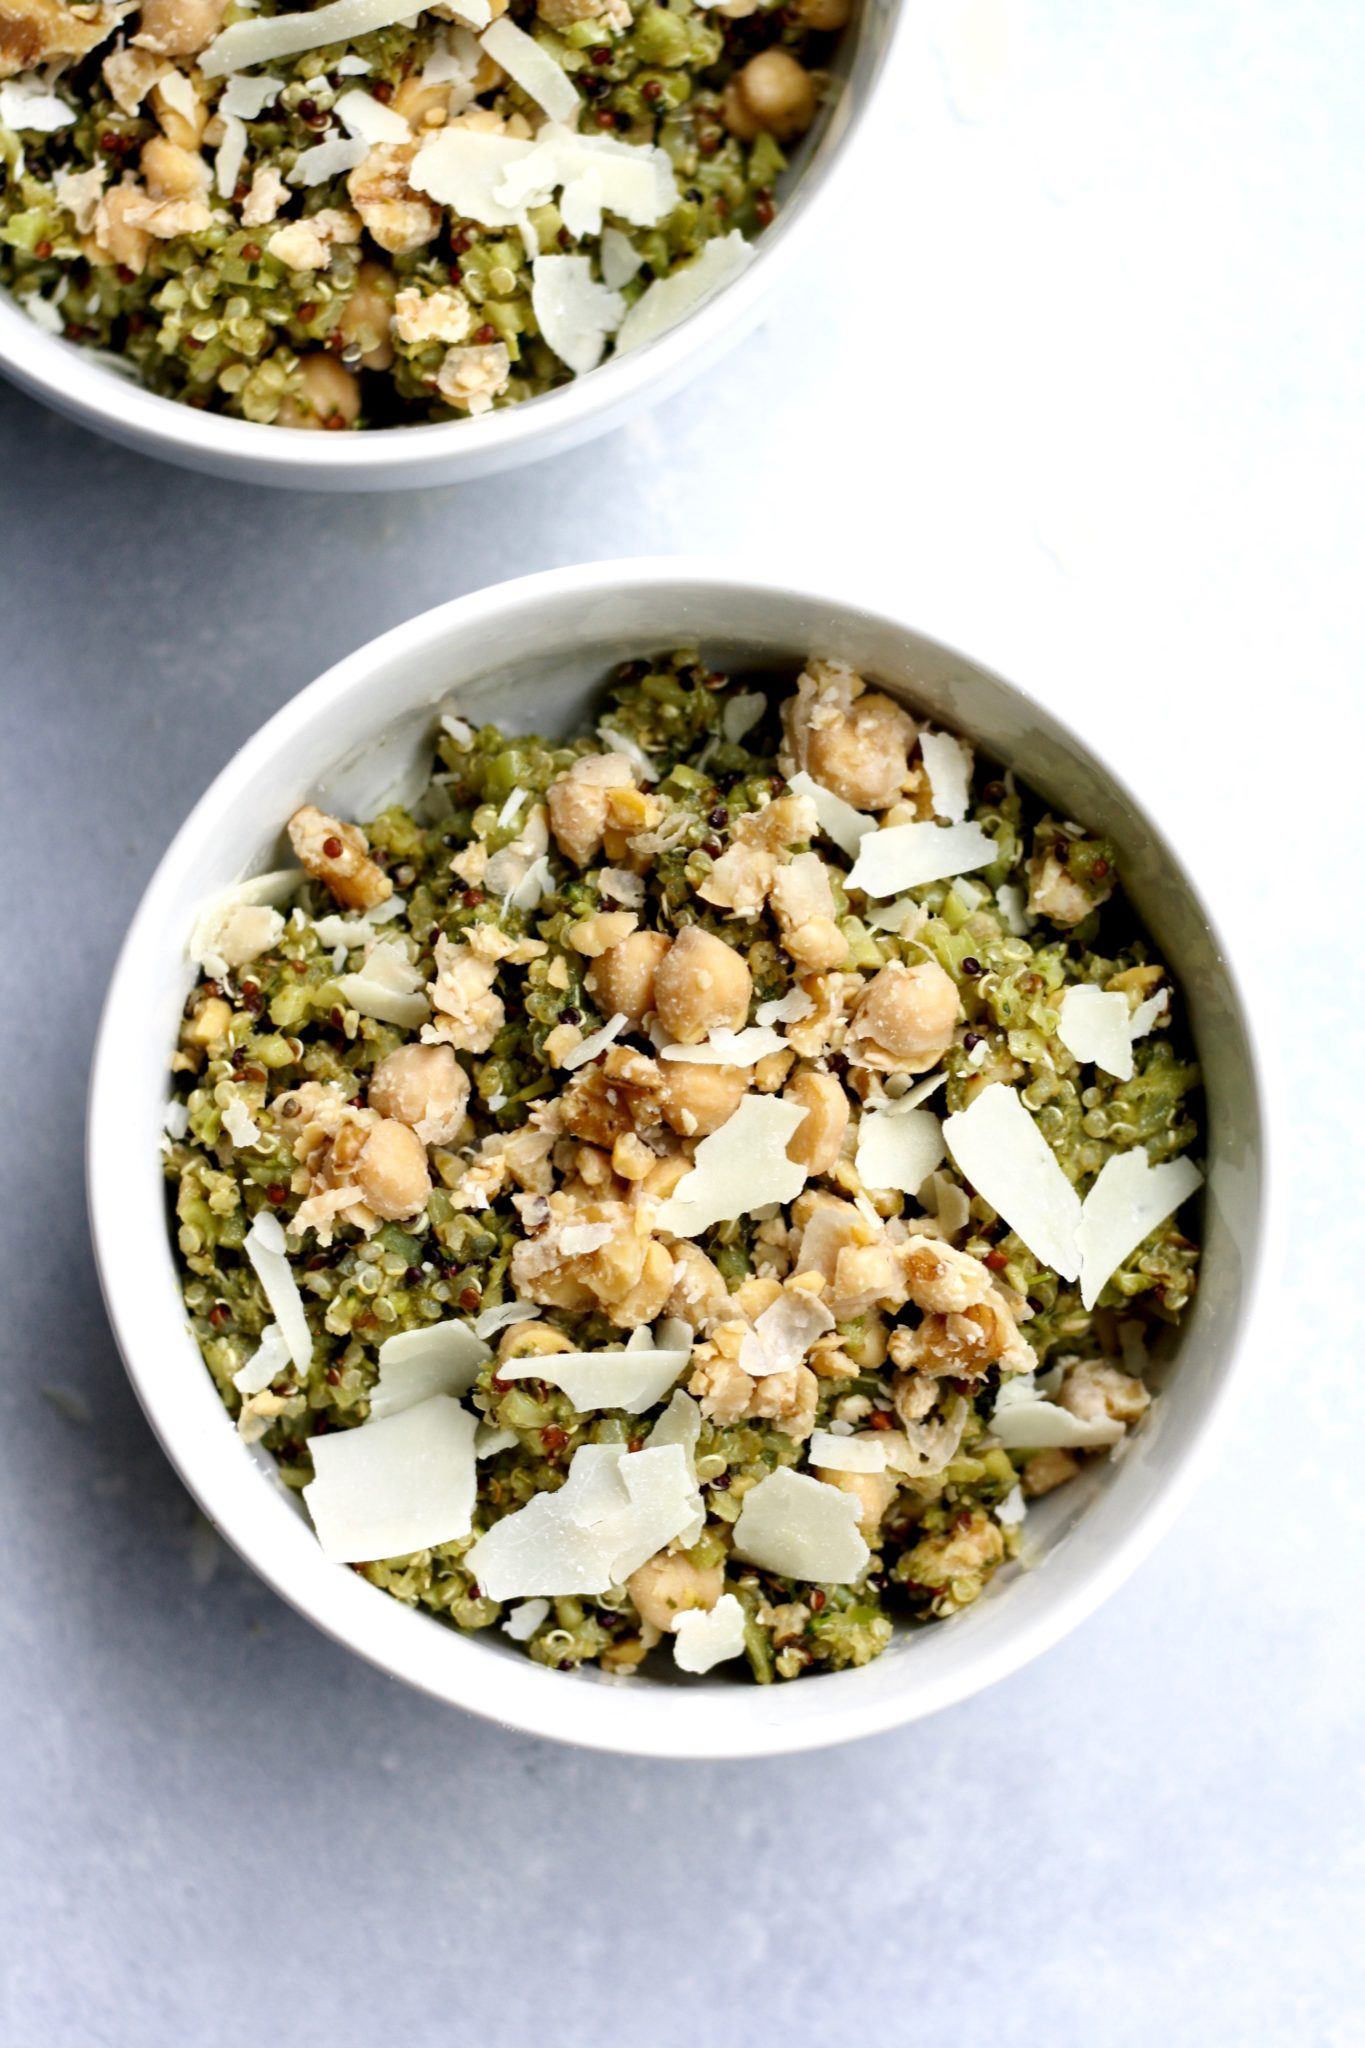 pesto quinoa with riced broccoli and chickpea walnut mash // cait's plate